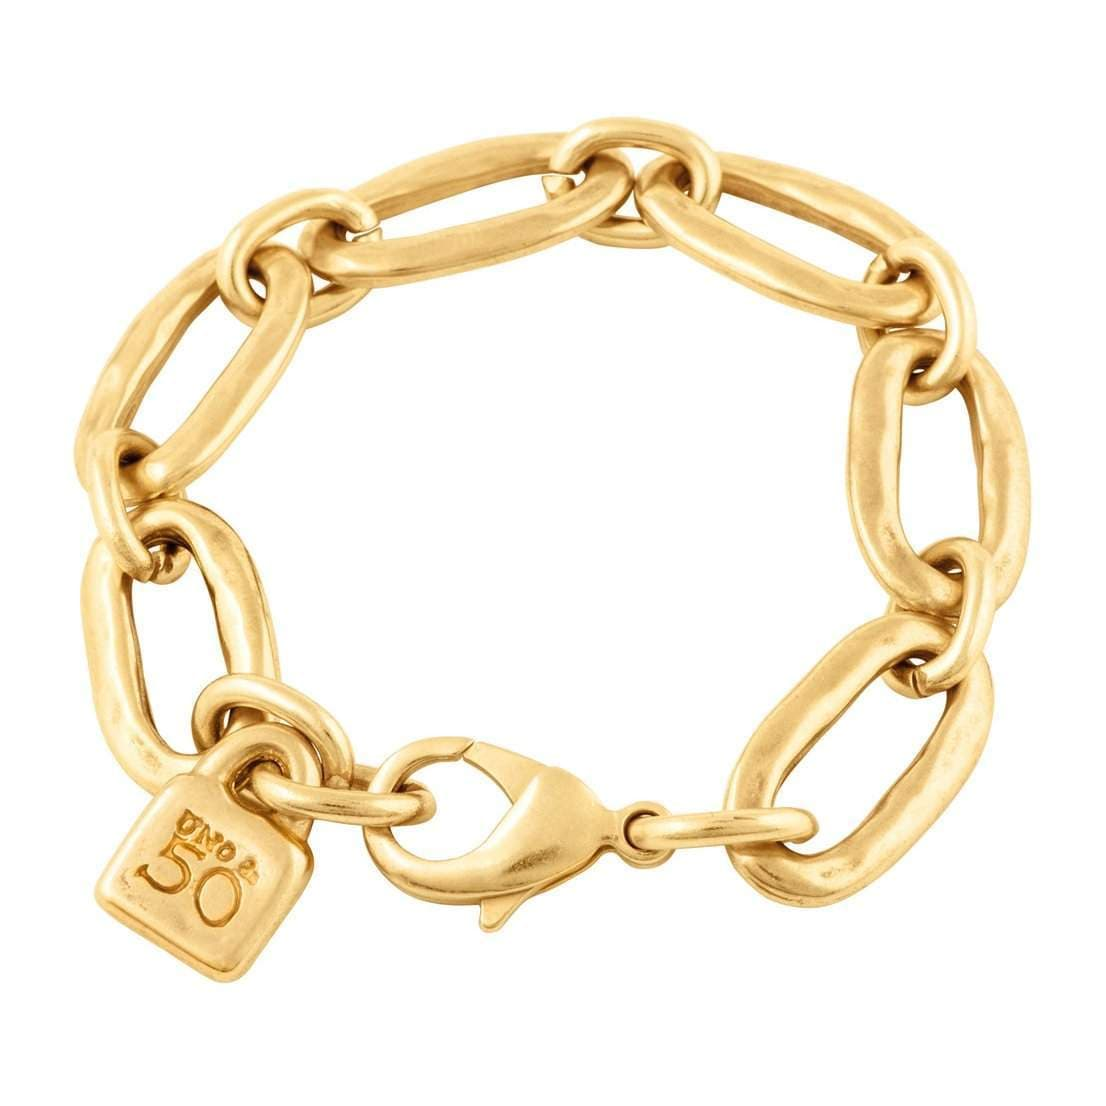 Awesome Bracelet - PUL0949ORO0000M